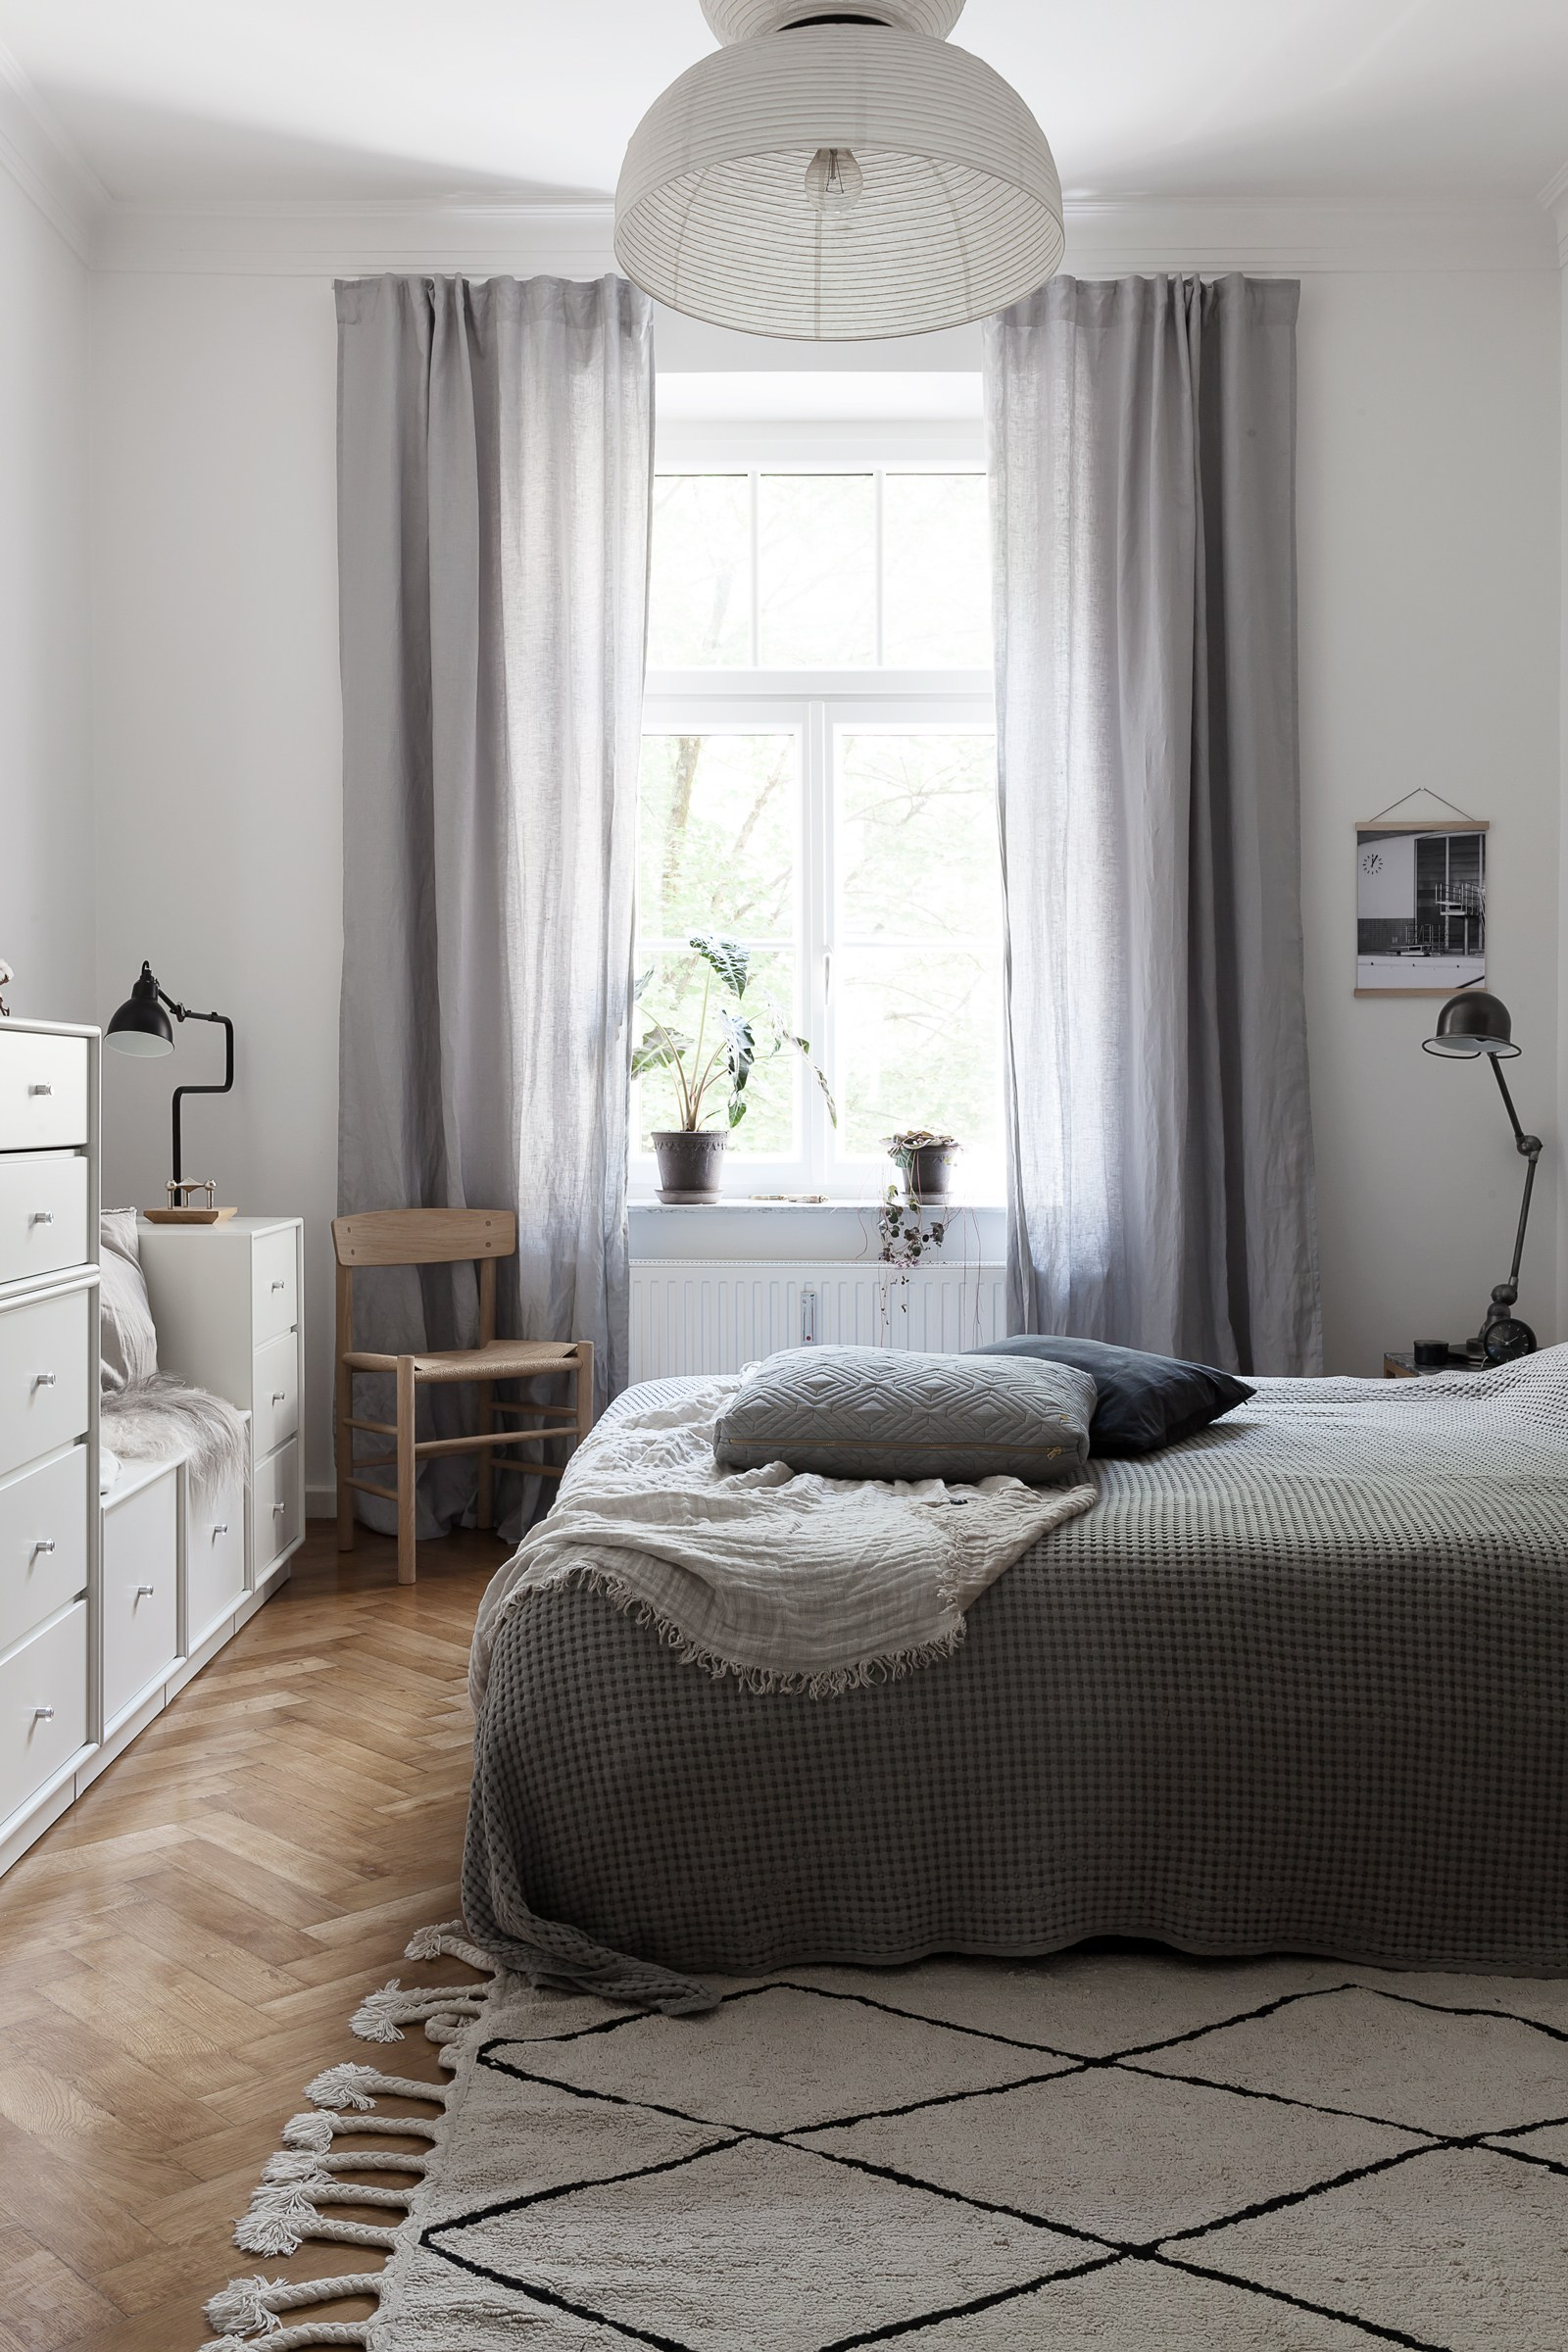 7 Ways to Nail Modern Chic in Your Bedroom